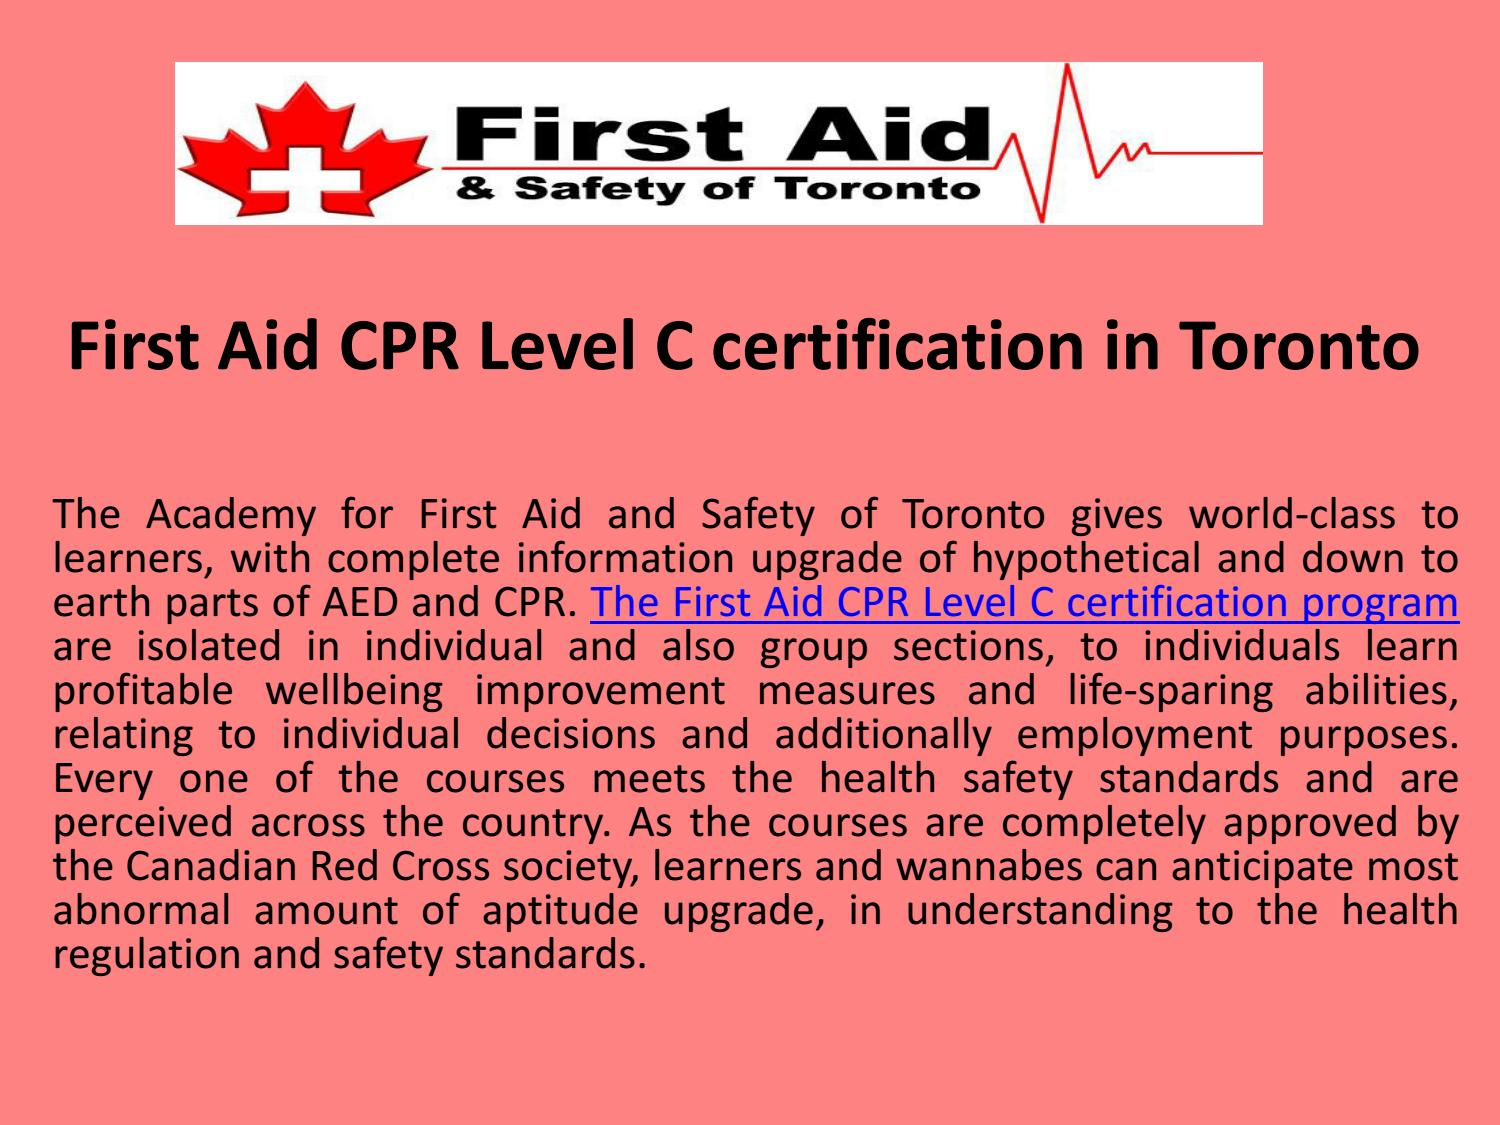 First Aid Cpr Level C Certification In Toronto By The Academy For